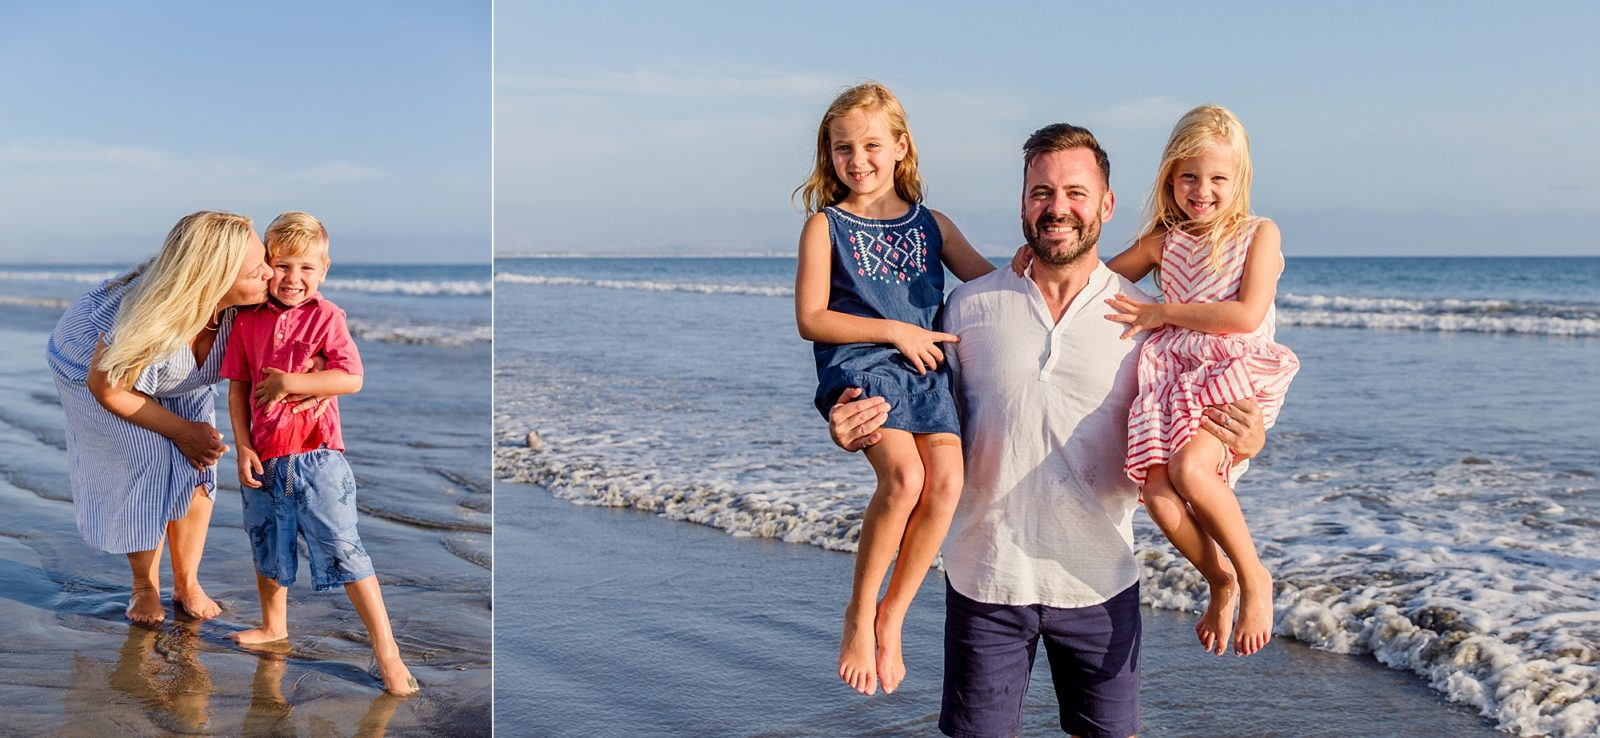 Hotel del Coronado Photographer | San Diego Beach Photography